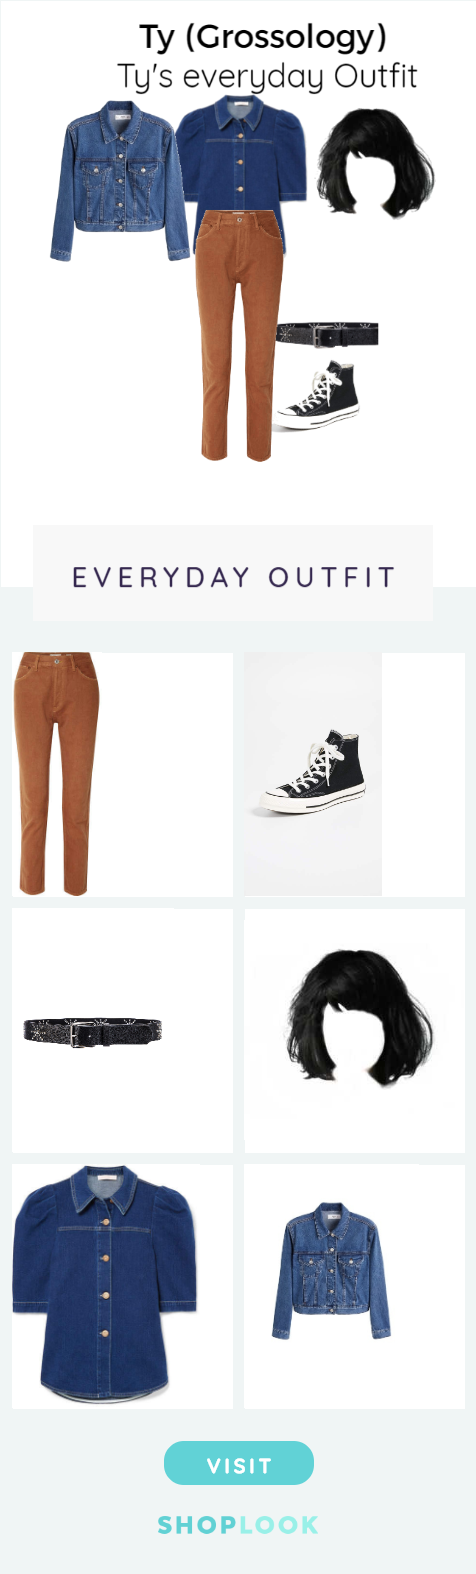 Ty (Grossology) created on ShopLook.io featuring re/done, converse, lovestrength, , see by chloe, mango perfect for Everyday. #seebychloe Ty (Grossology) created on ShopLook.io featuring re/done, converse, lovestrength, , see by chloe, mango perfect for Everyday. #seebychloe